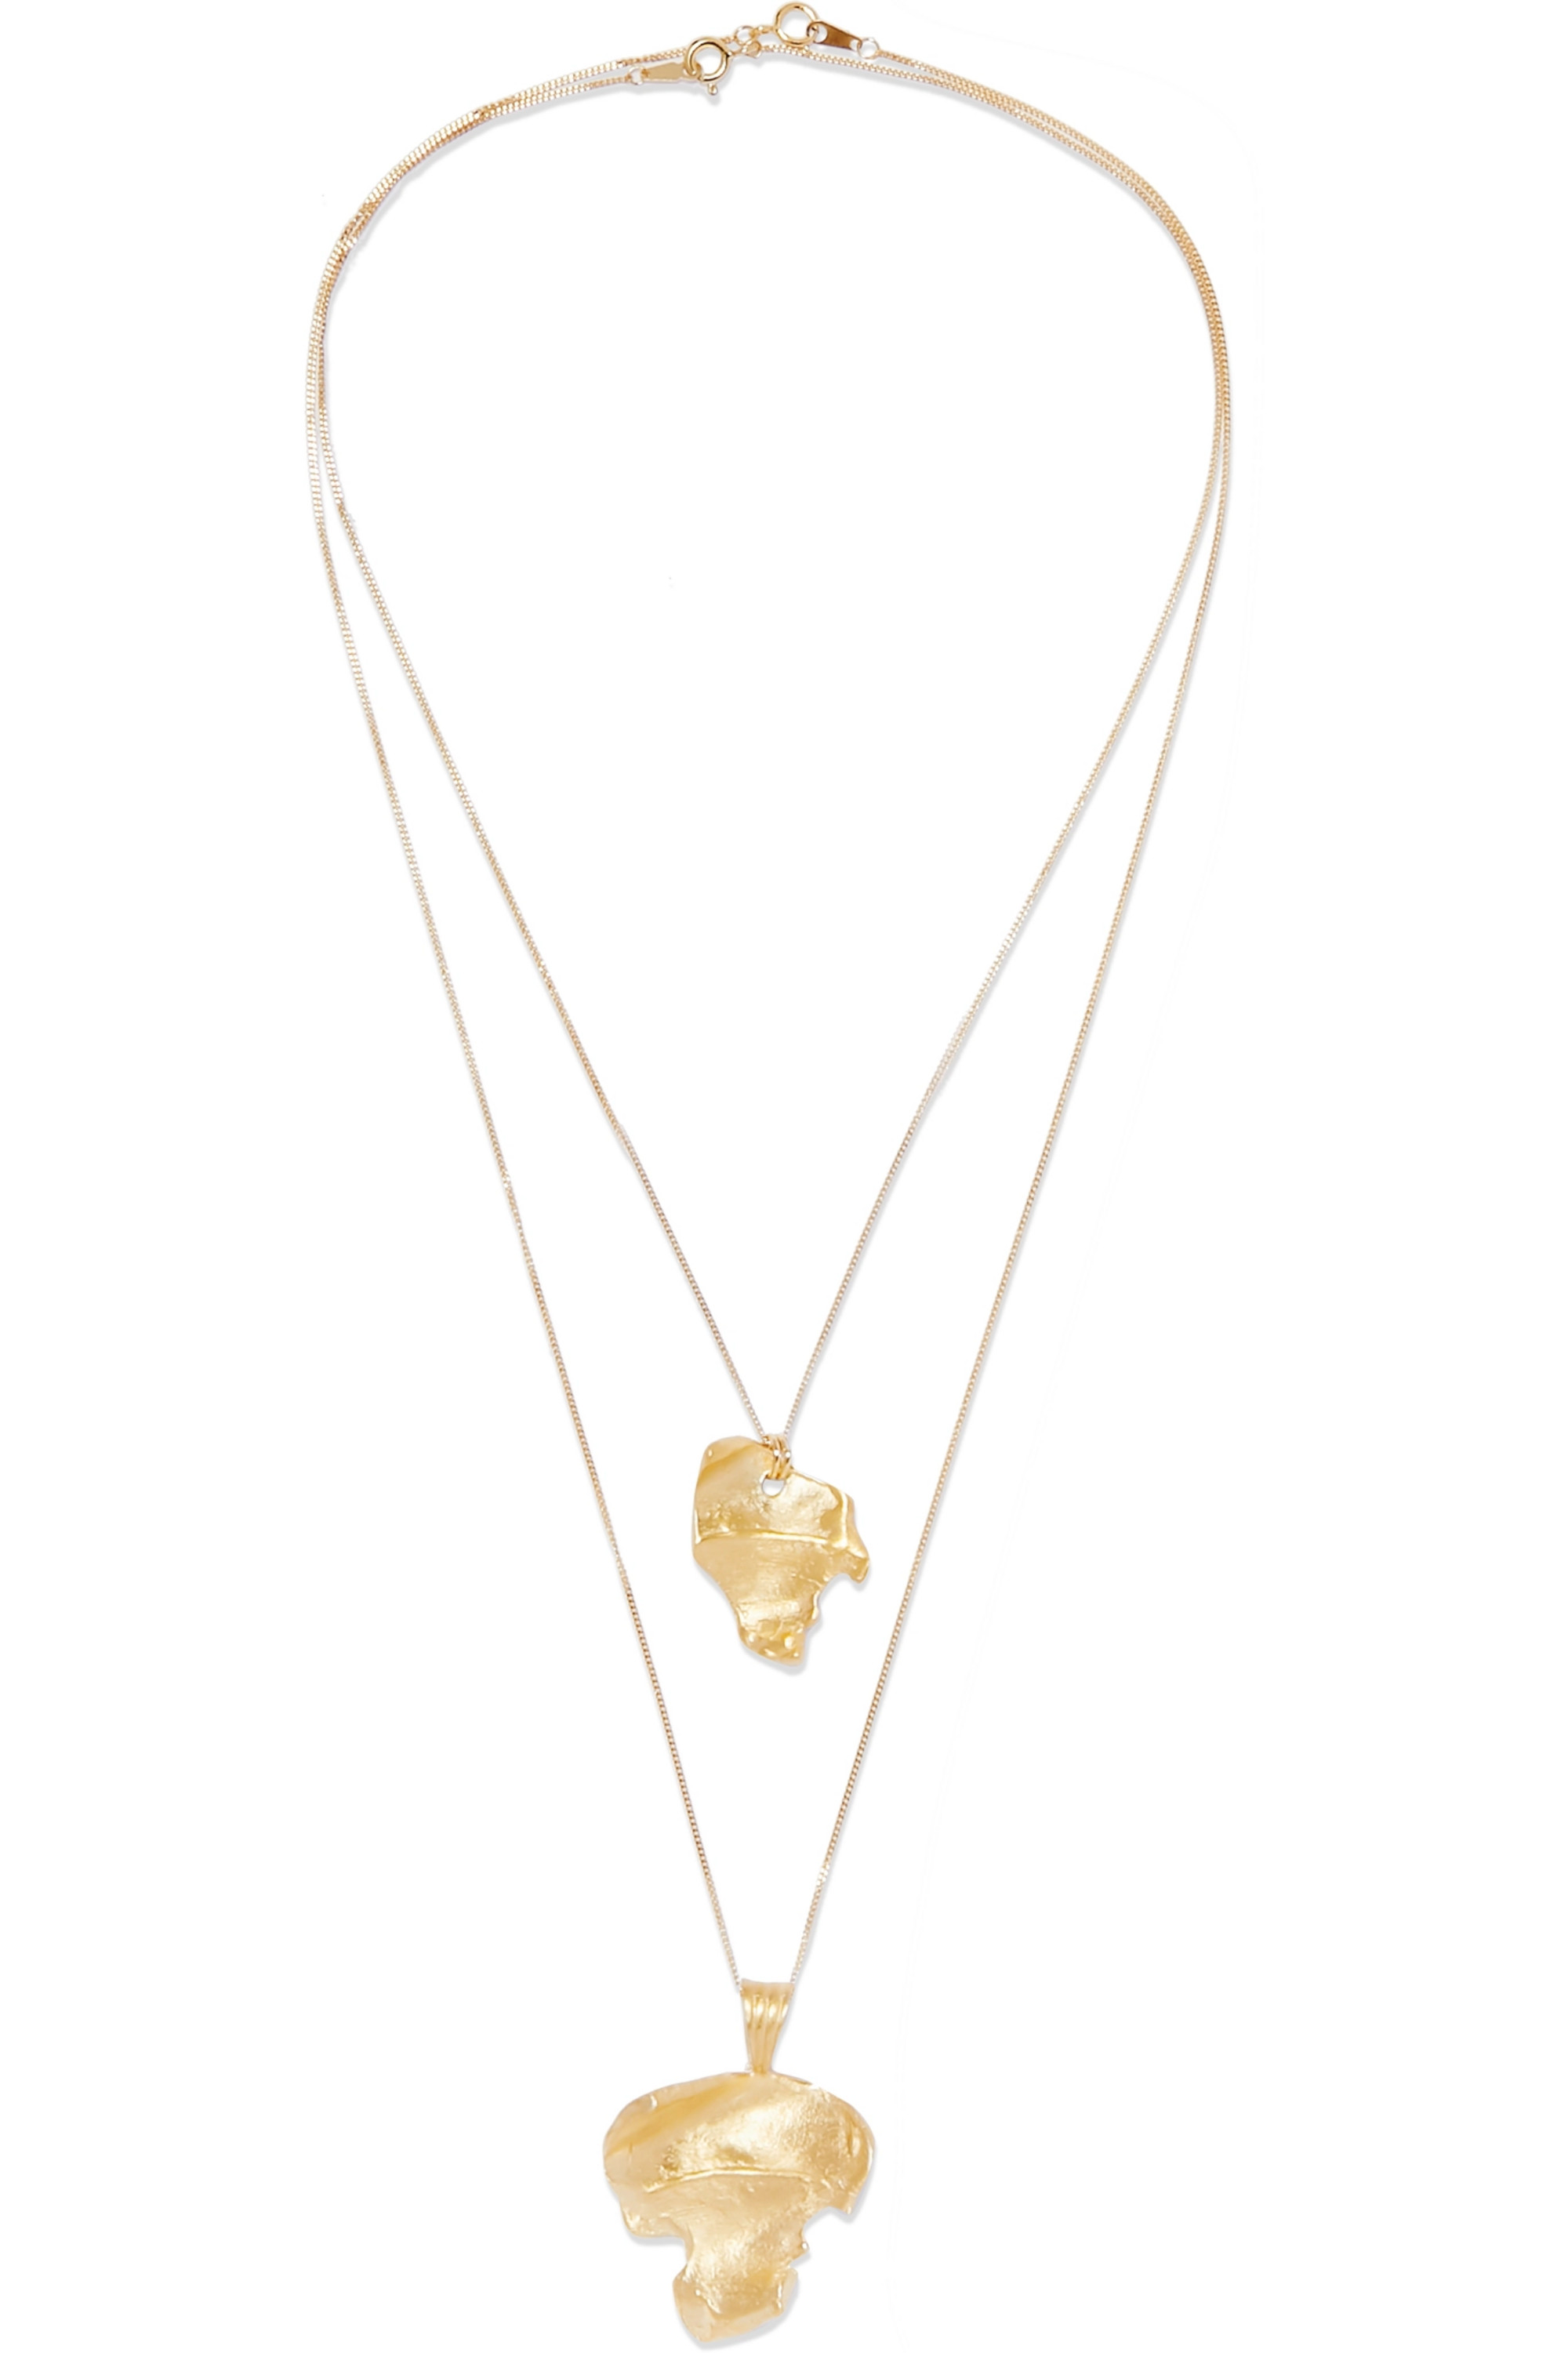 1064 Studio Silence 14 set of two gold-plated necklaces